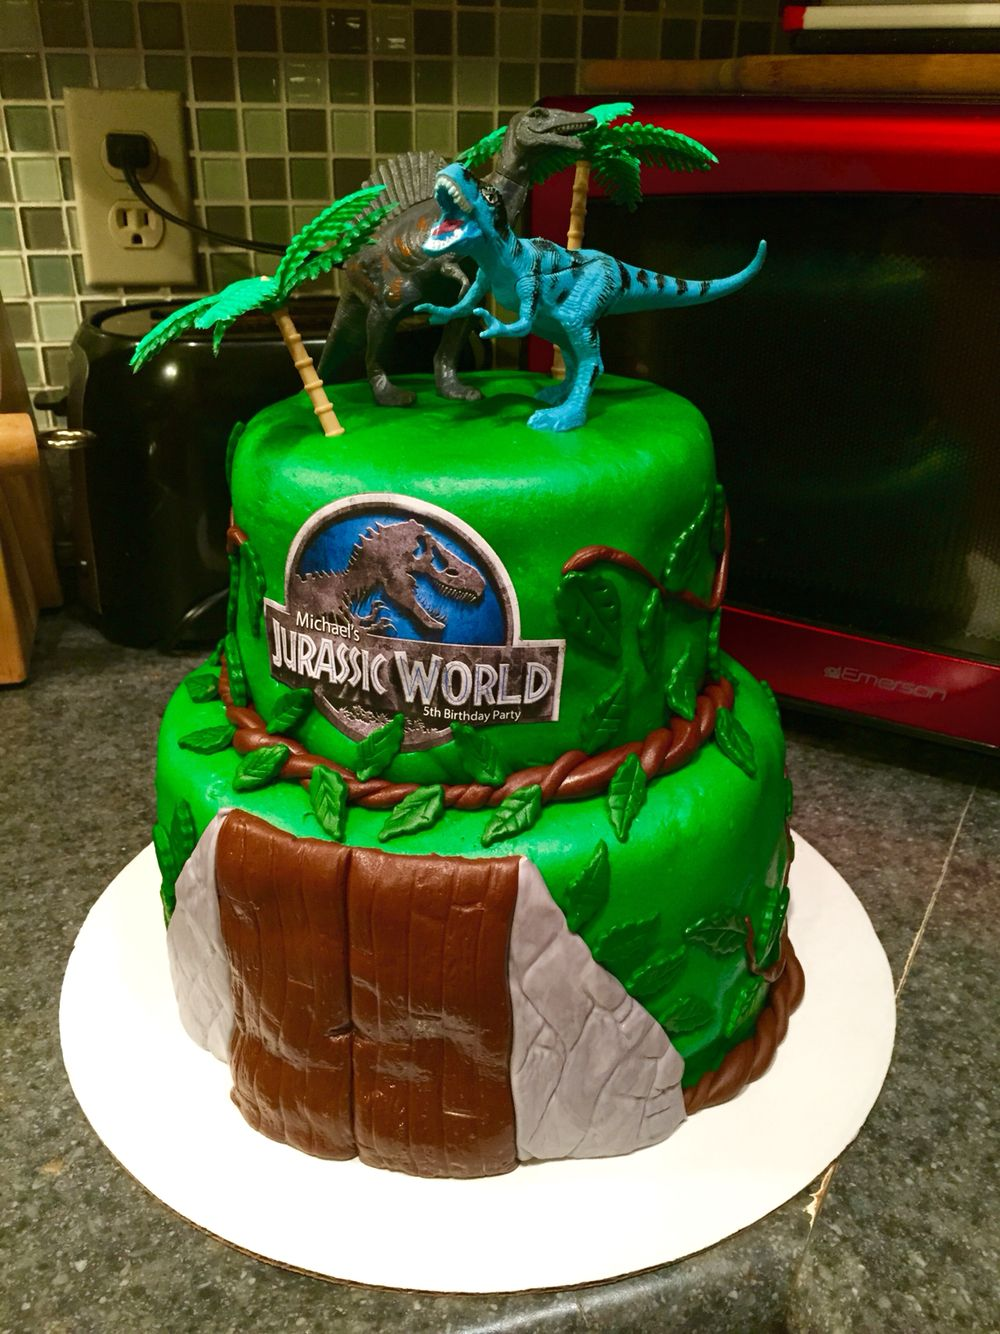 Jurassic world cake Baking Pinterest Cake and Birthdays